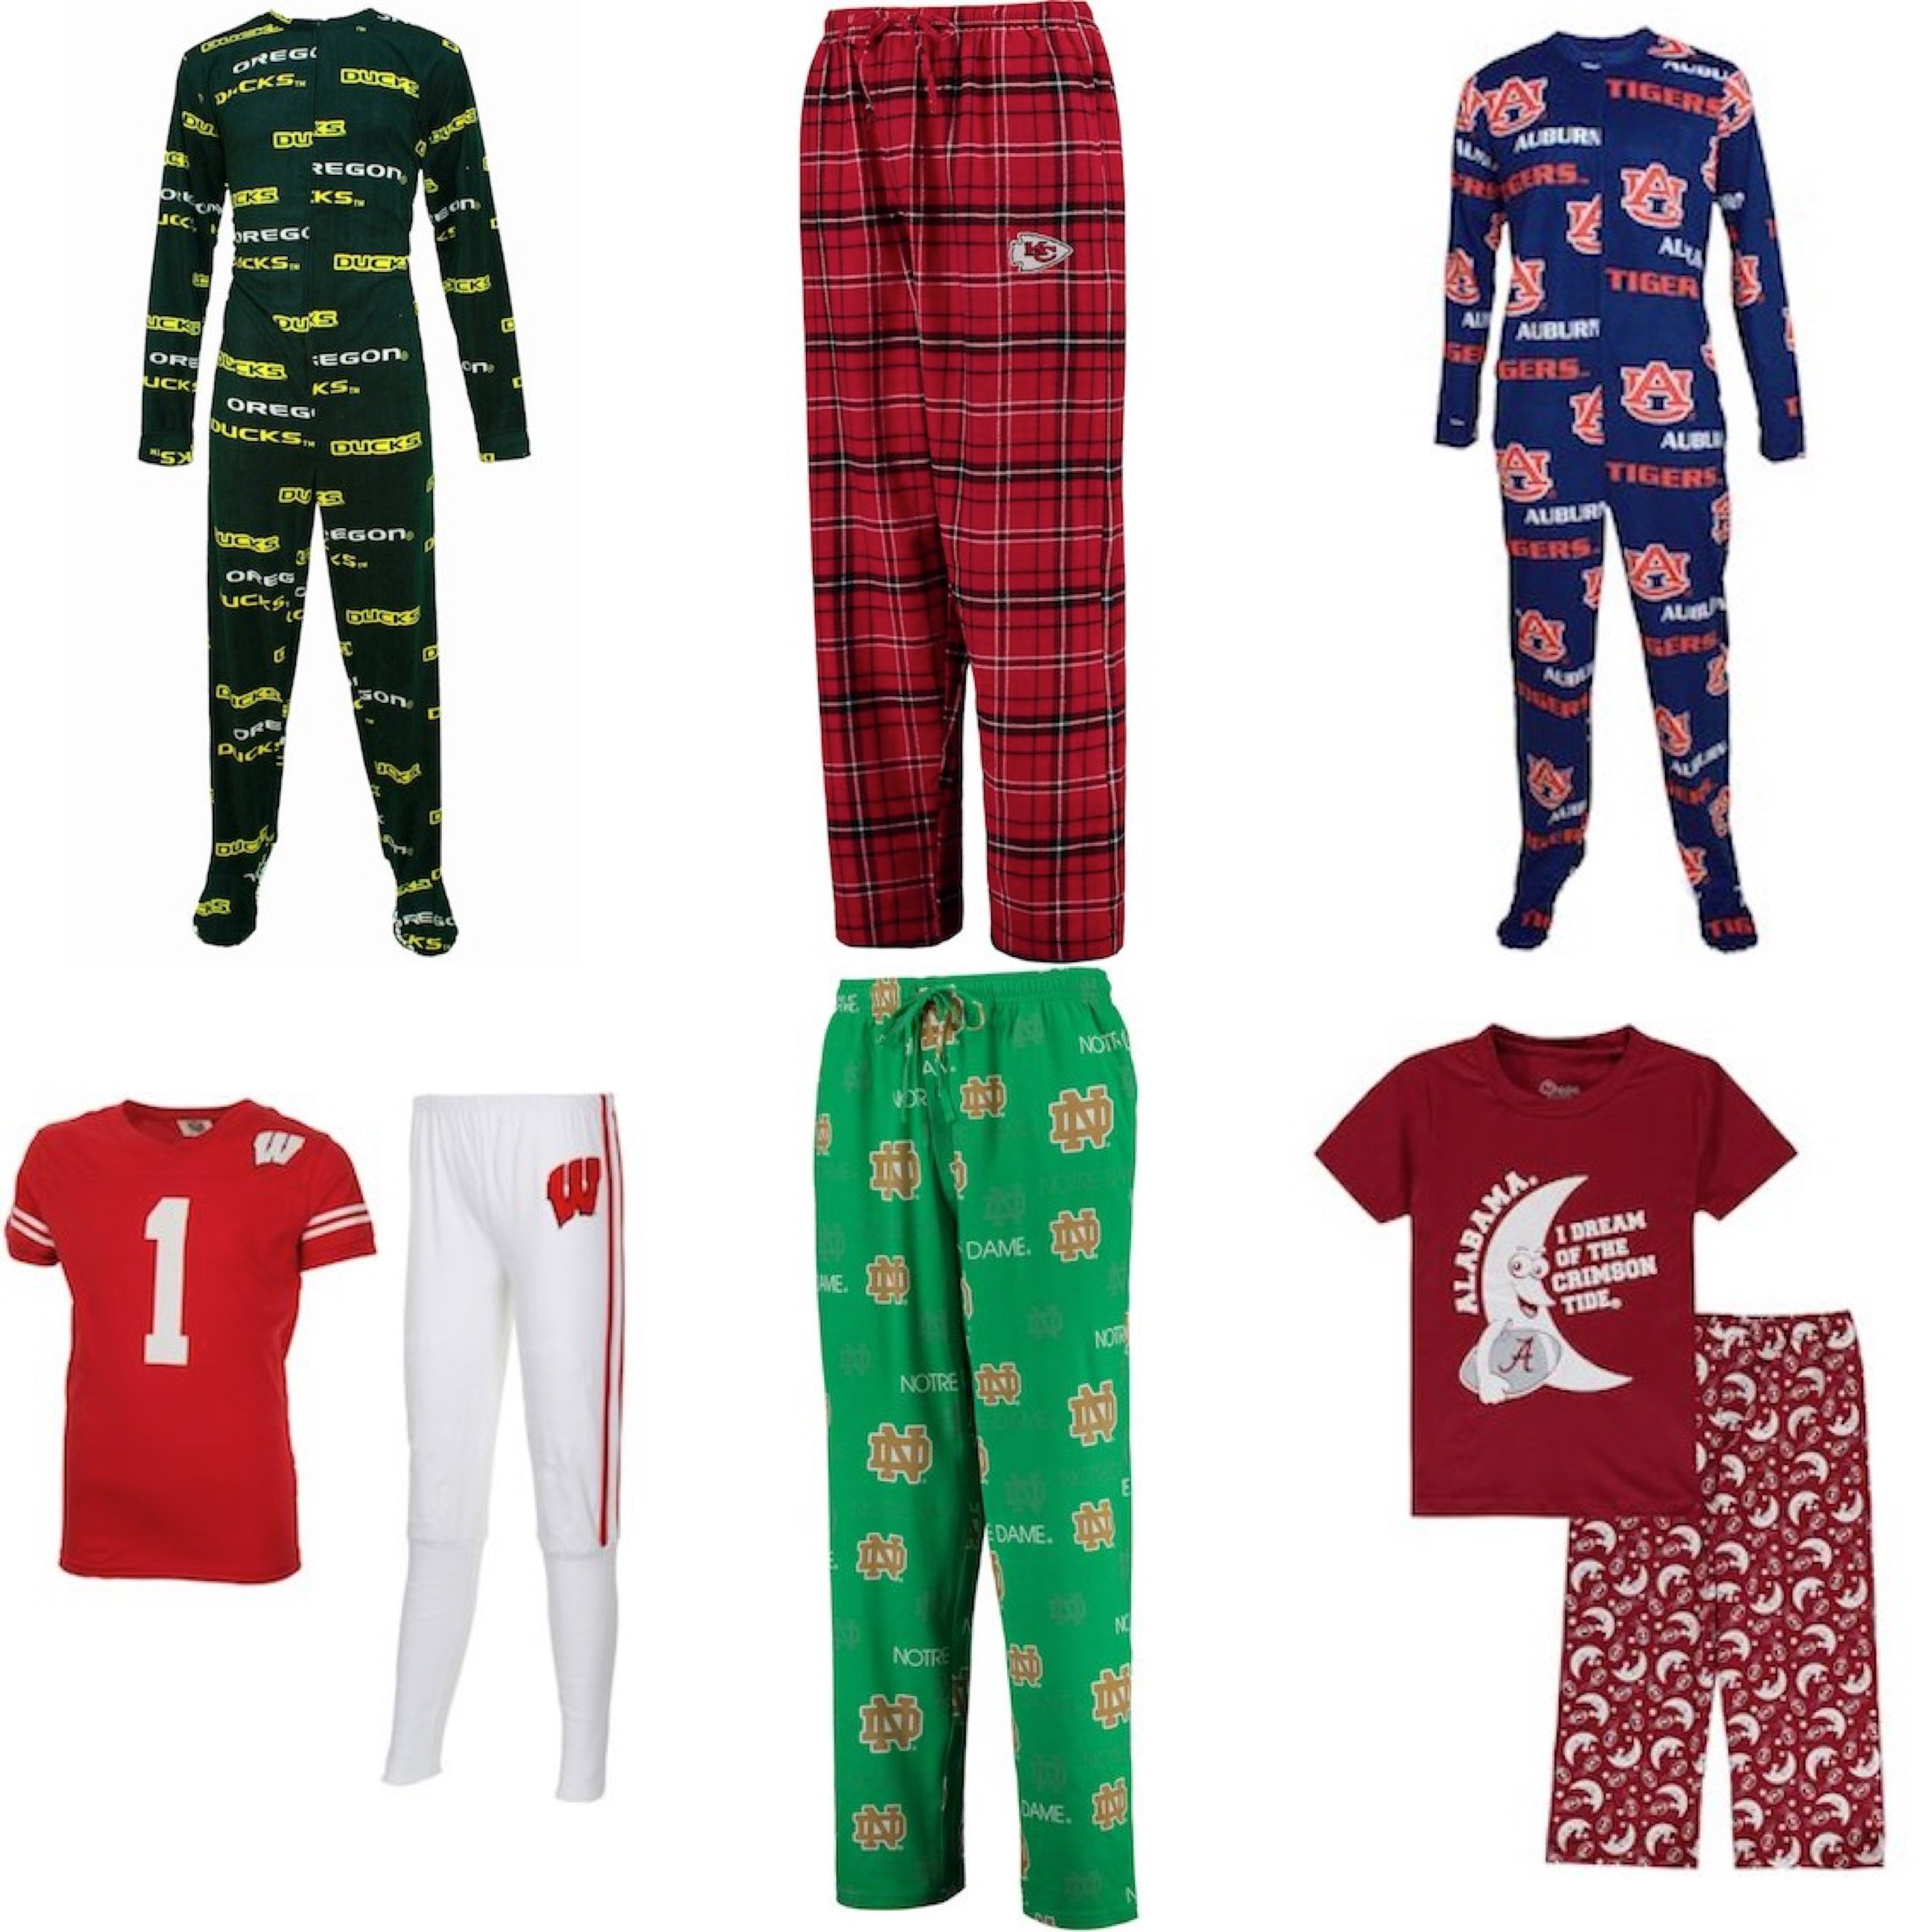 Sports Team Family Pajamas for Women, Men & Kids